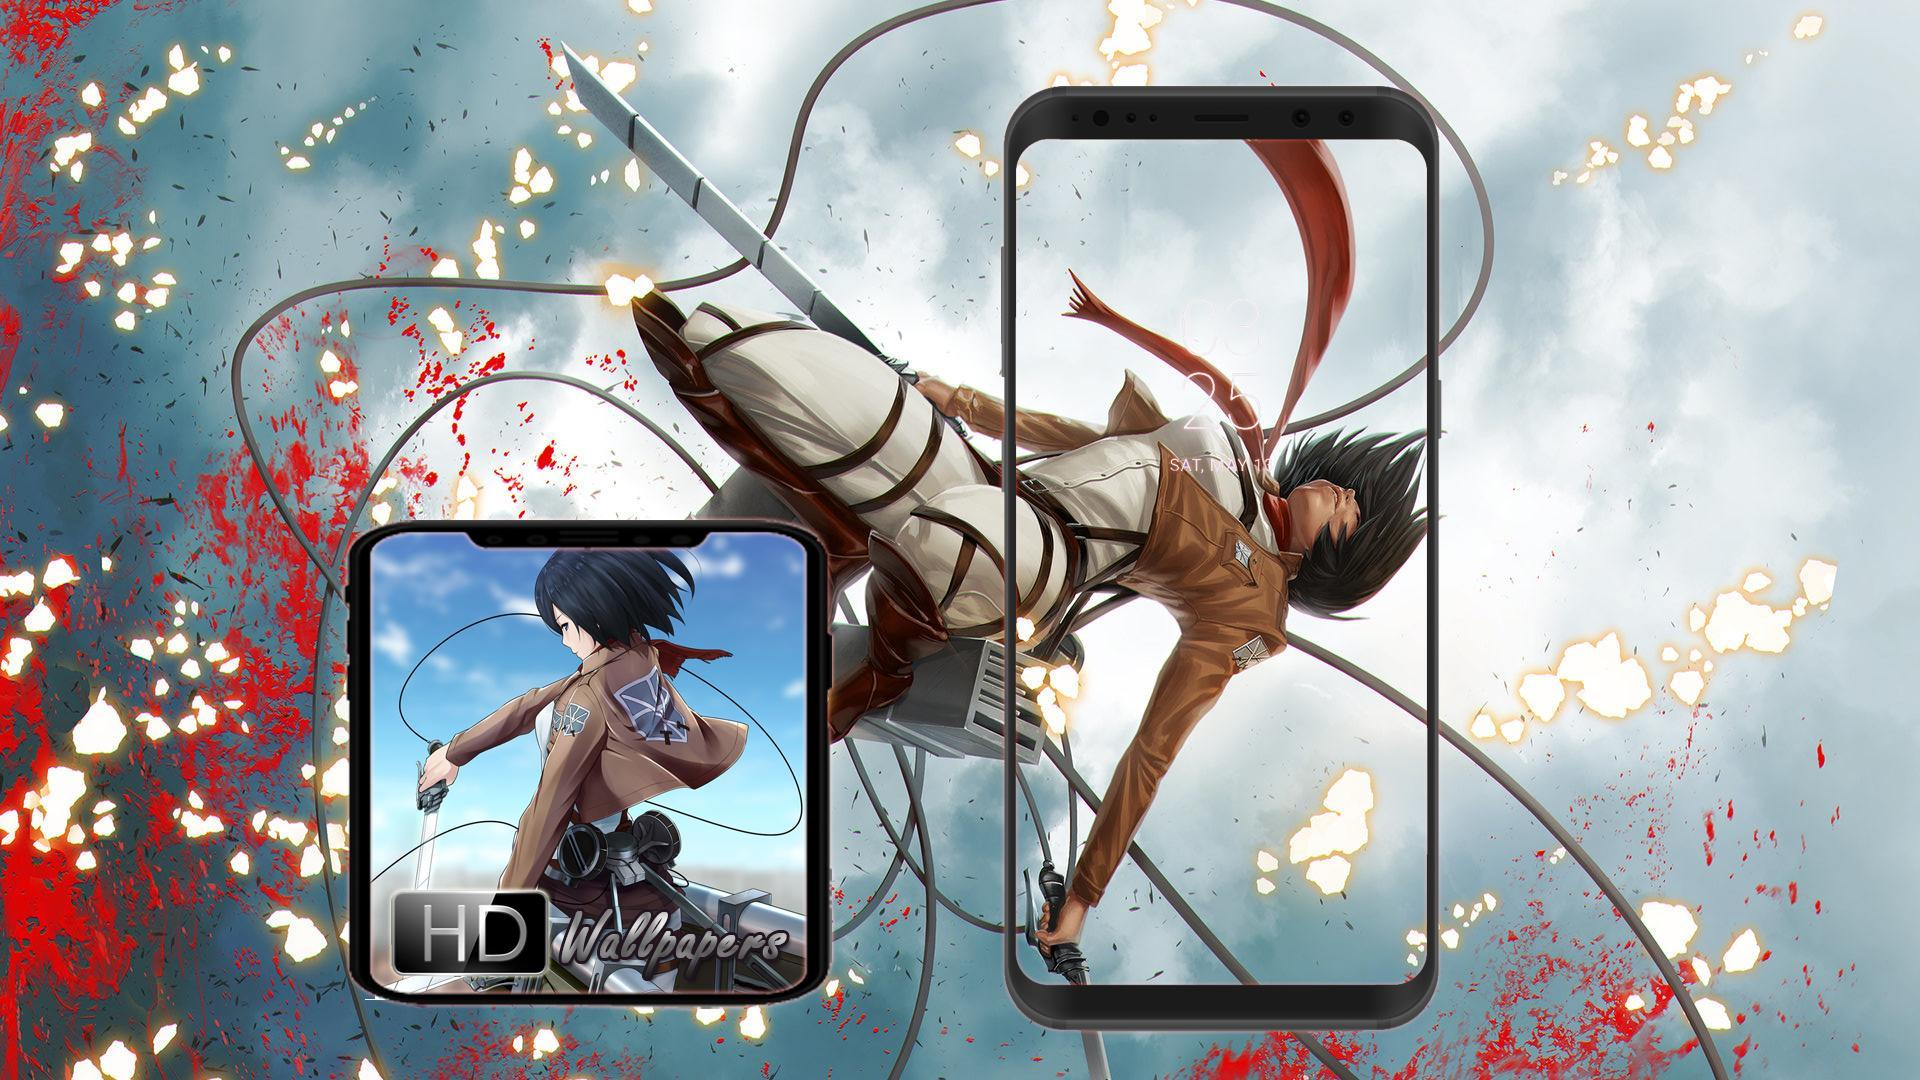 Anime Attack On Titan Hd Wallpapers For Android Apk Download